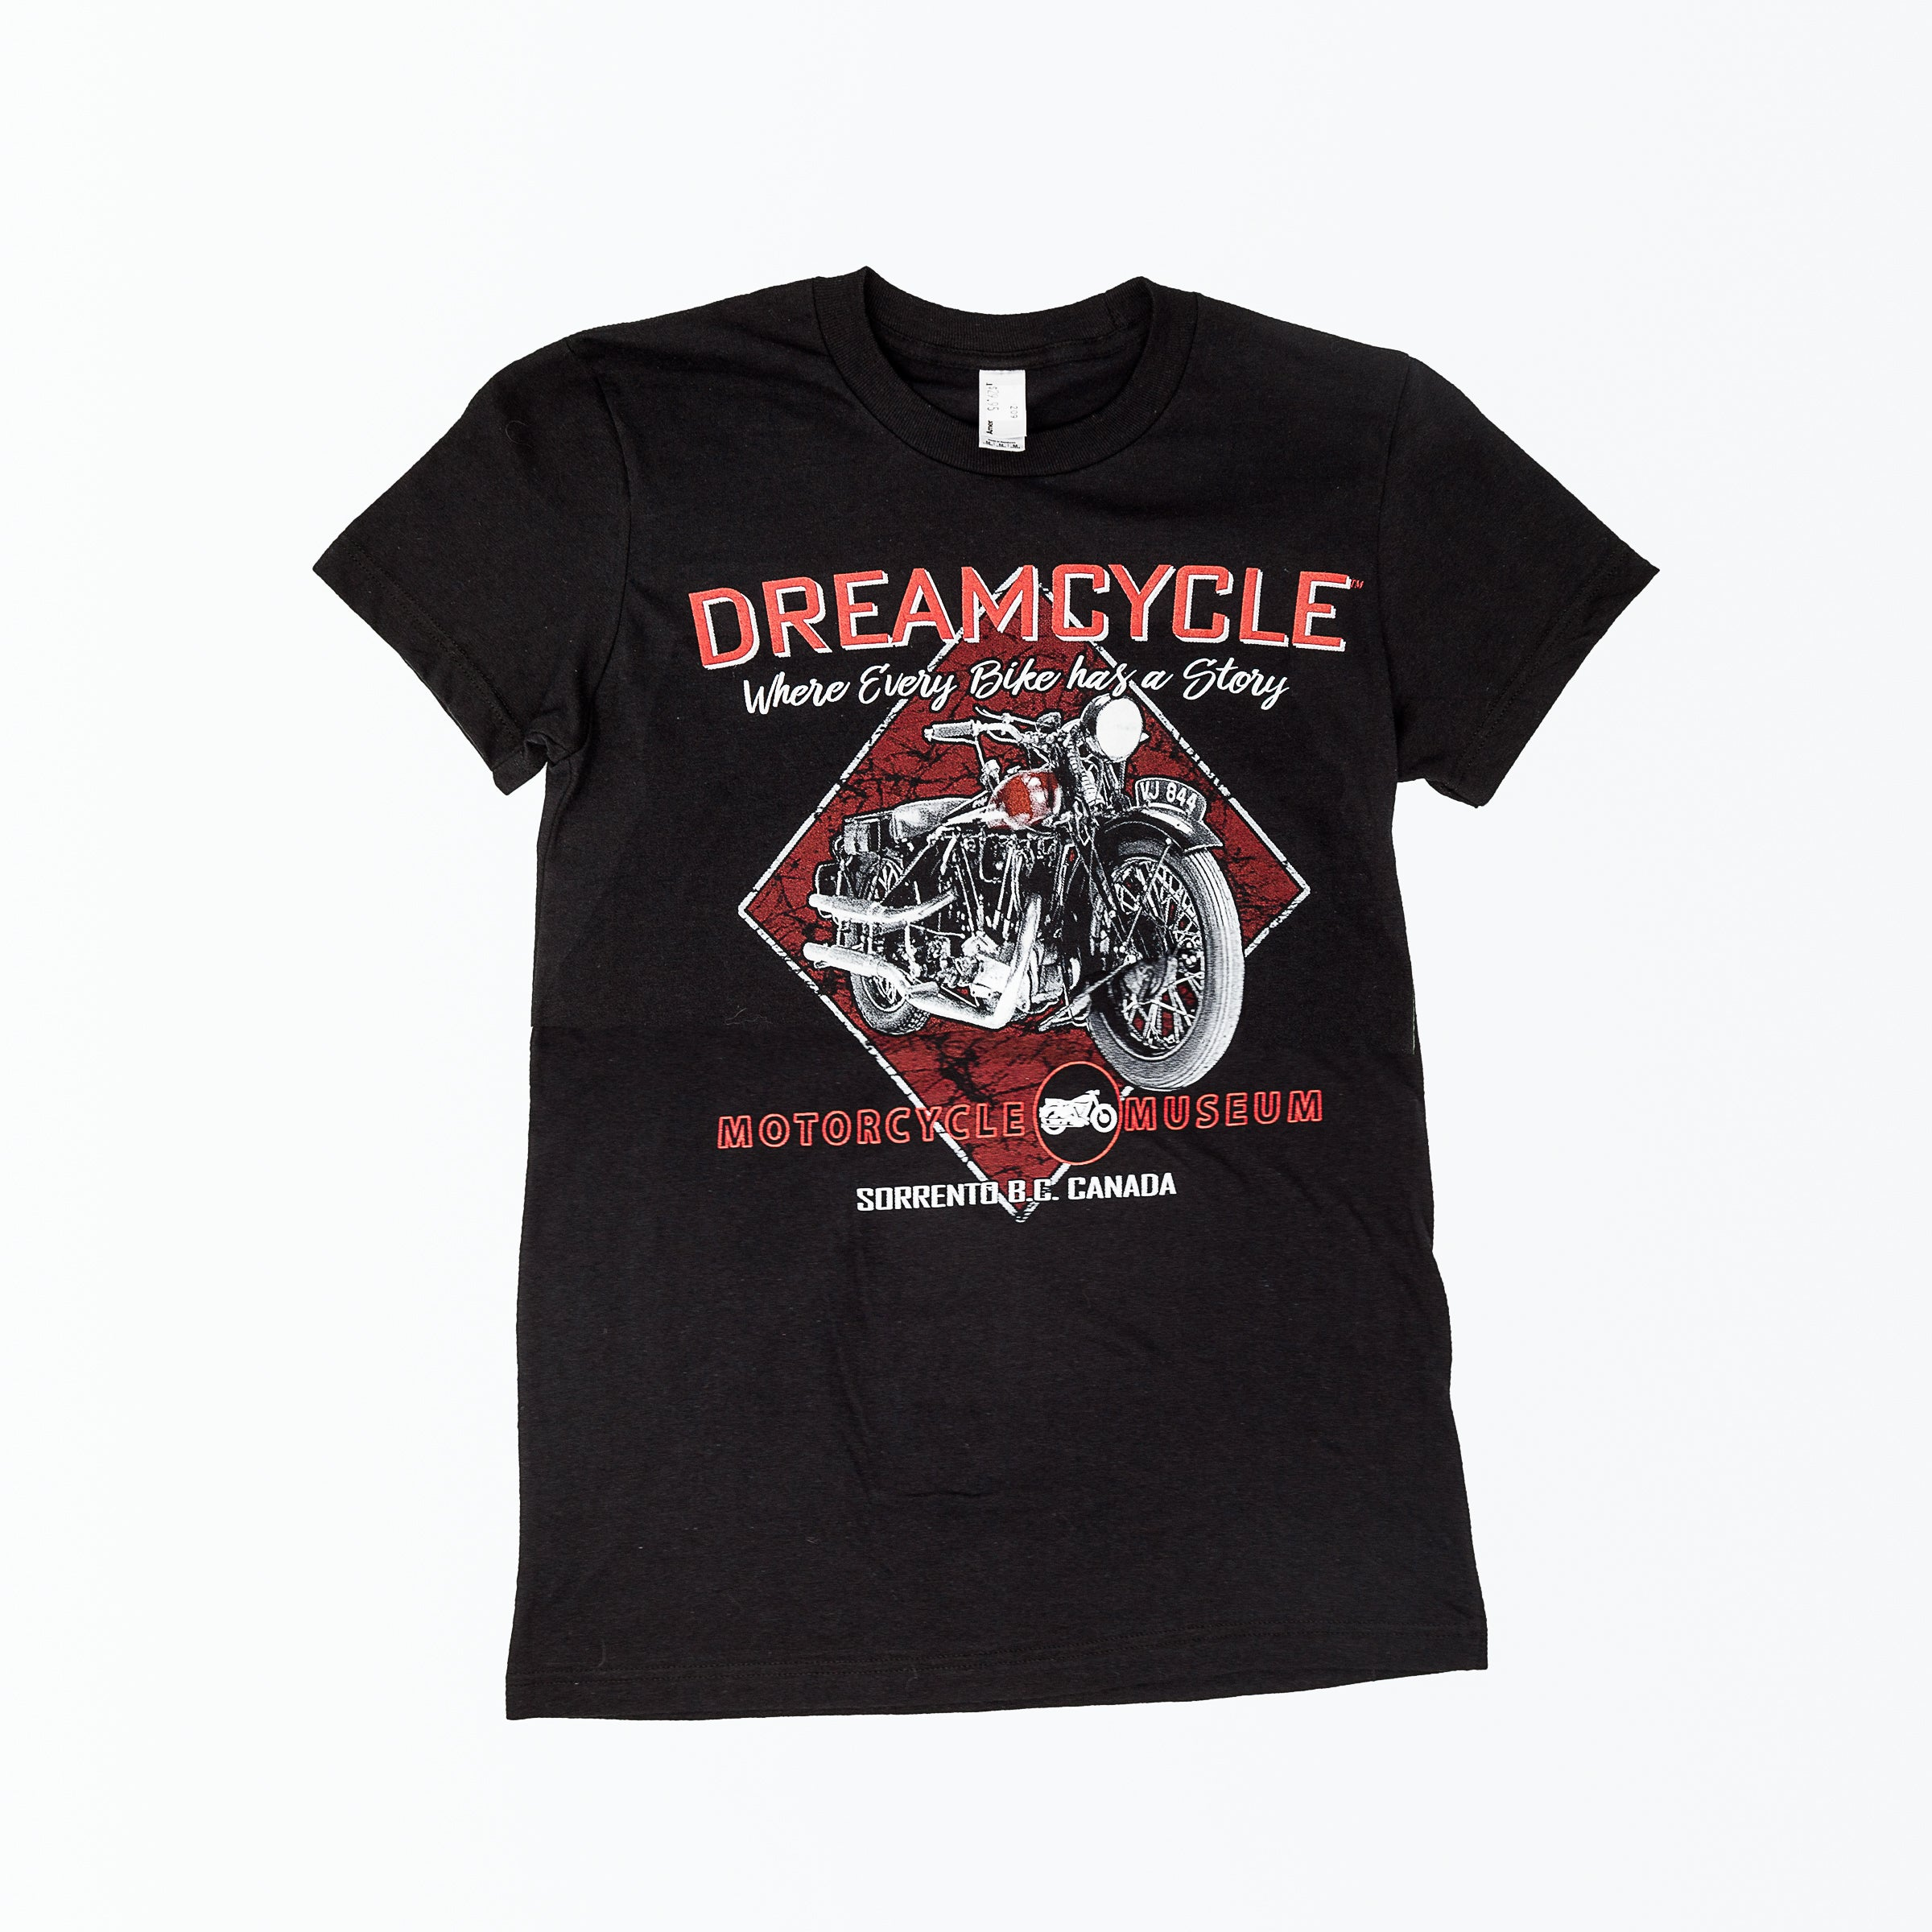 "Dreamcycle Motorcycle Museum |  ""Dreamcyce"" Tshirt on white background."